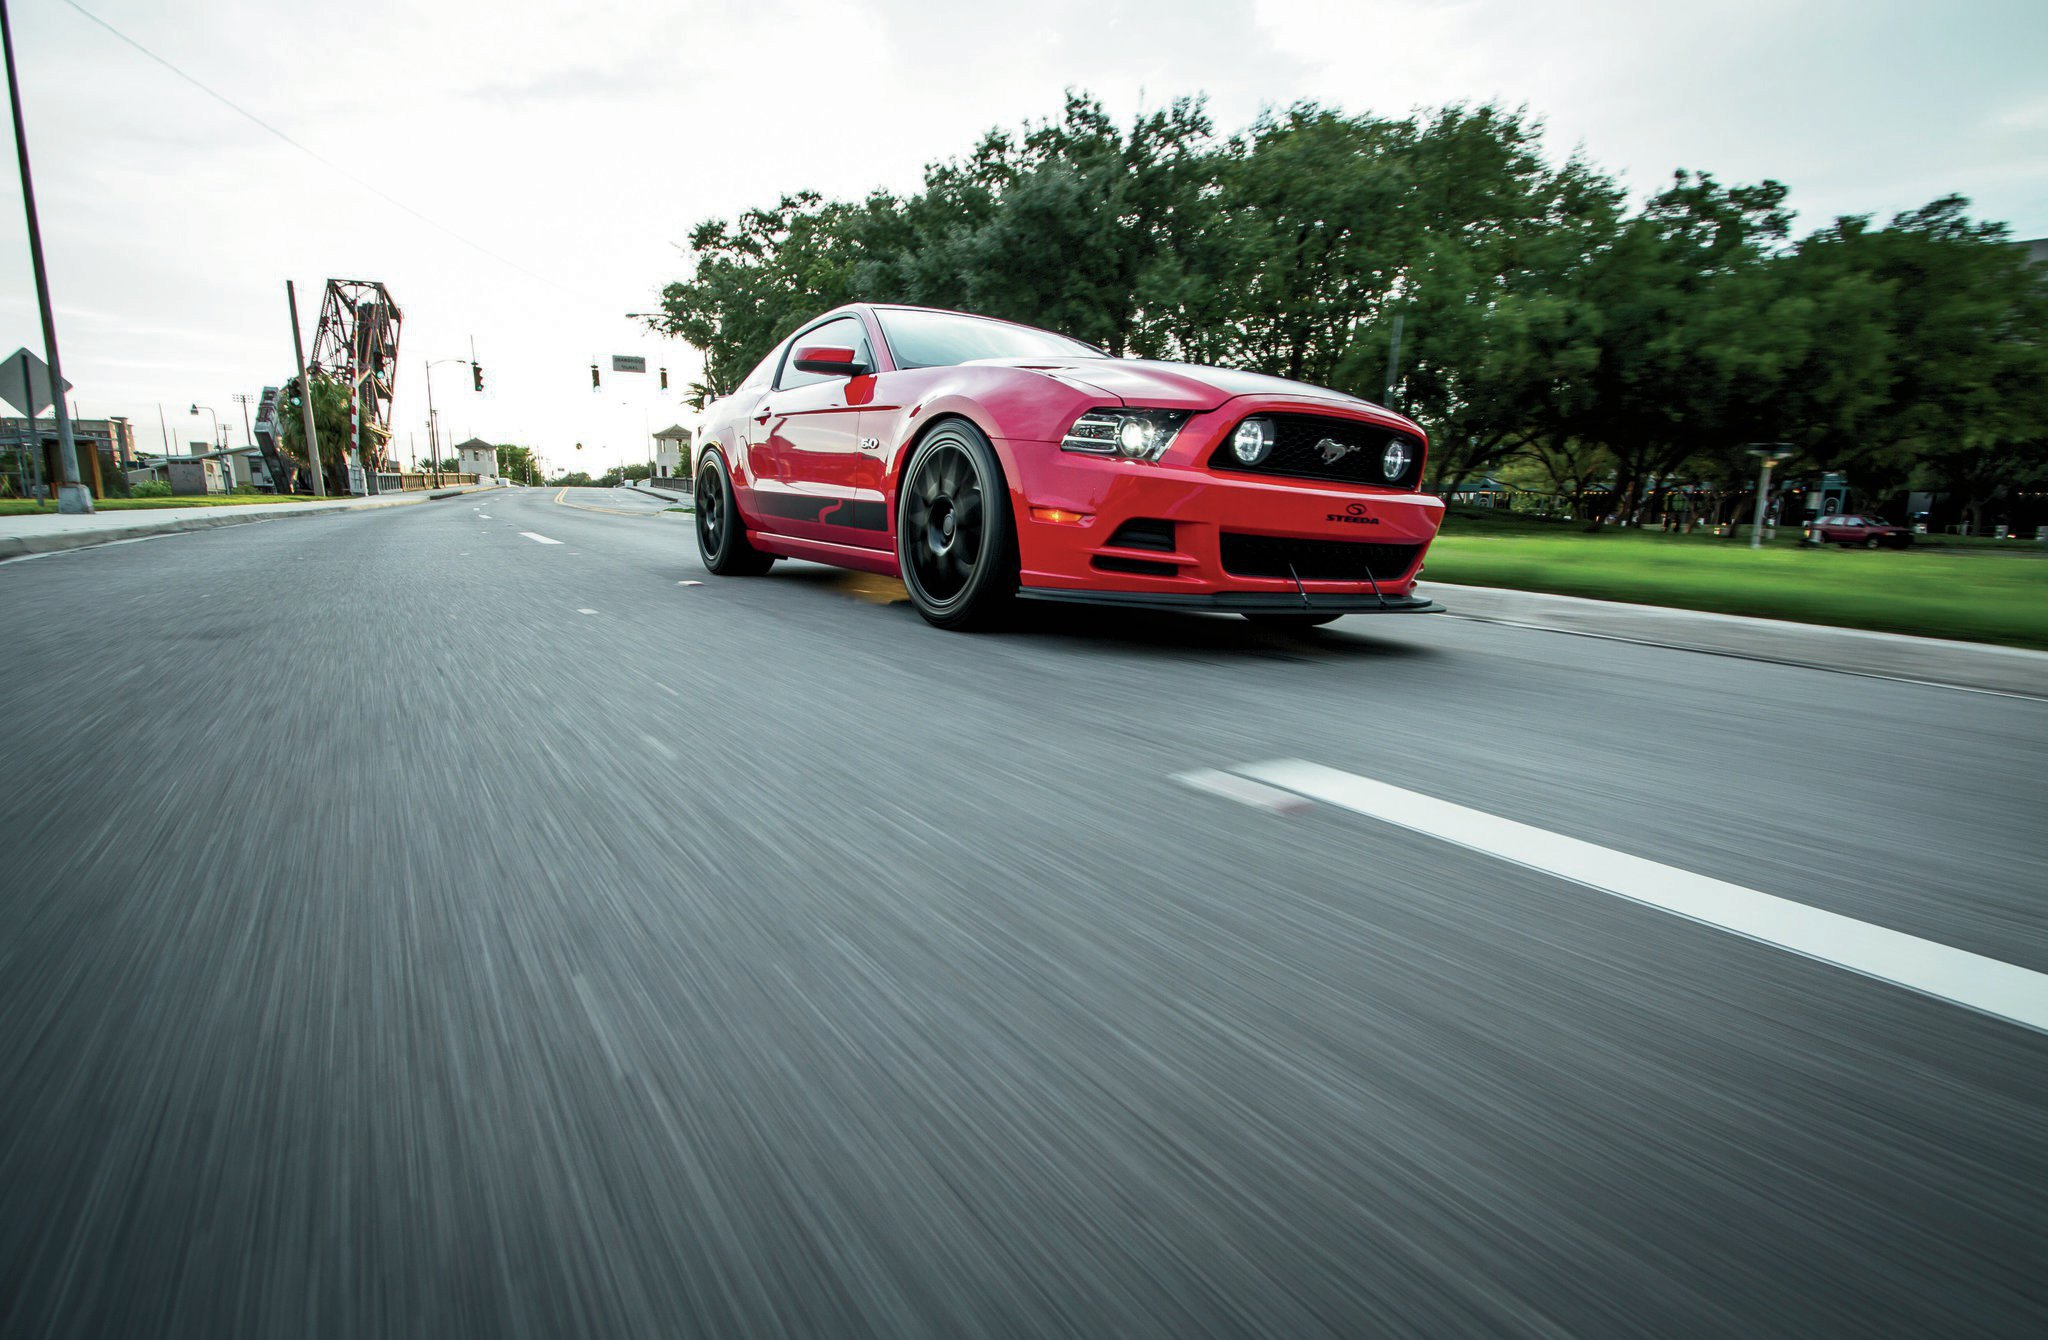 2014 Ford Mustang Passenger Side View